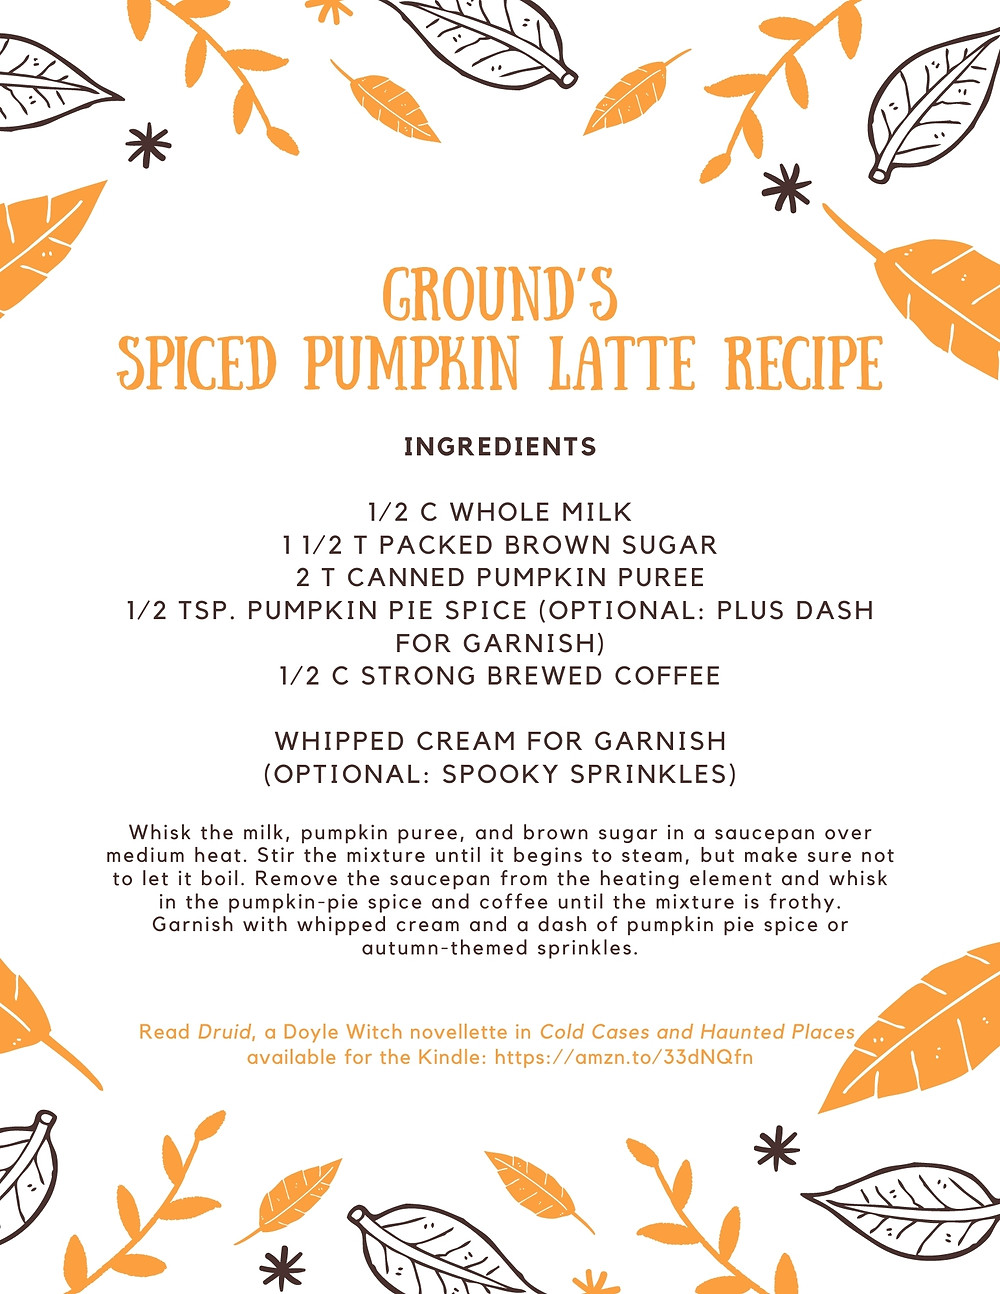 Ground's Spiced Pumpkin Latte Recipe 1/2 C whole milk 1 1/2 T packed brown sugar 2 T canned pumpkin puree 1/2 tsp. pumpkin pie spice (optional: plus dash for garnish) 1/2 C strong brewed coffee  Whipped cream for garnish (optional: spooky sprinkles)  Whisk the milk, pumpkin puree, and brown sugar in a saucepan over medium heat. Stir the mixture until it begins to steam, but make sure not to let it boil.   Remove the saucepan from the heating element and whisk in the pumpkin-pie spice and coffee until the mixture is frothy. Garnish with whipped cream and a dash of pumpkin pie spice or autumn-themed sprinkles.